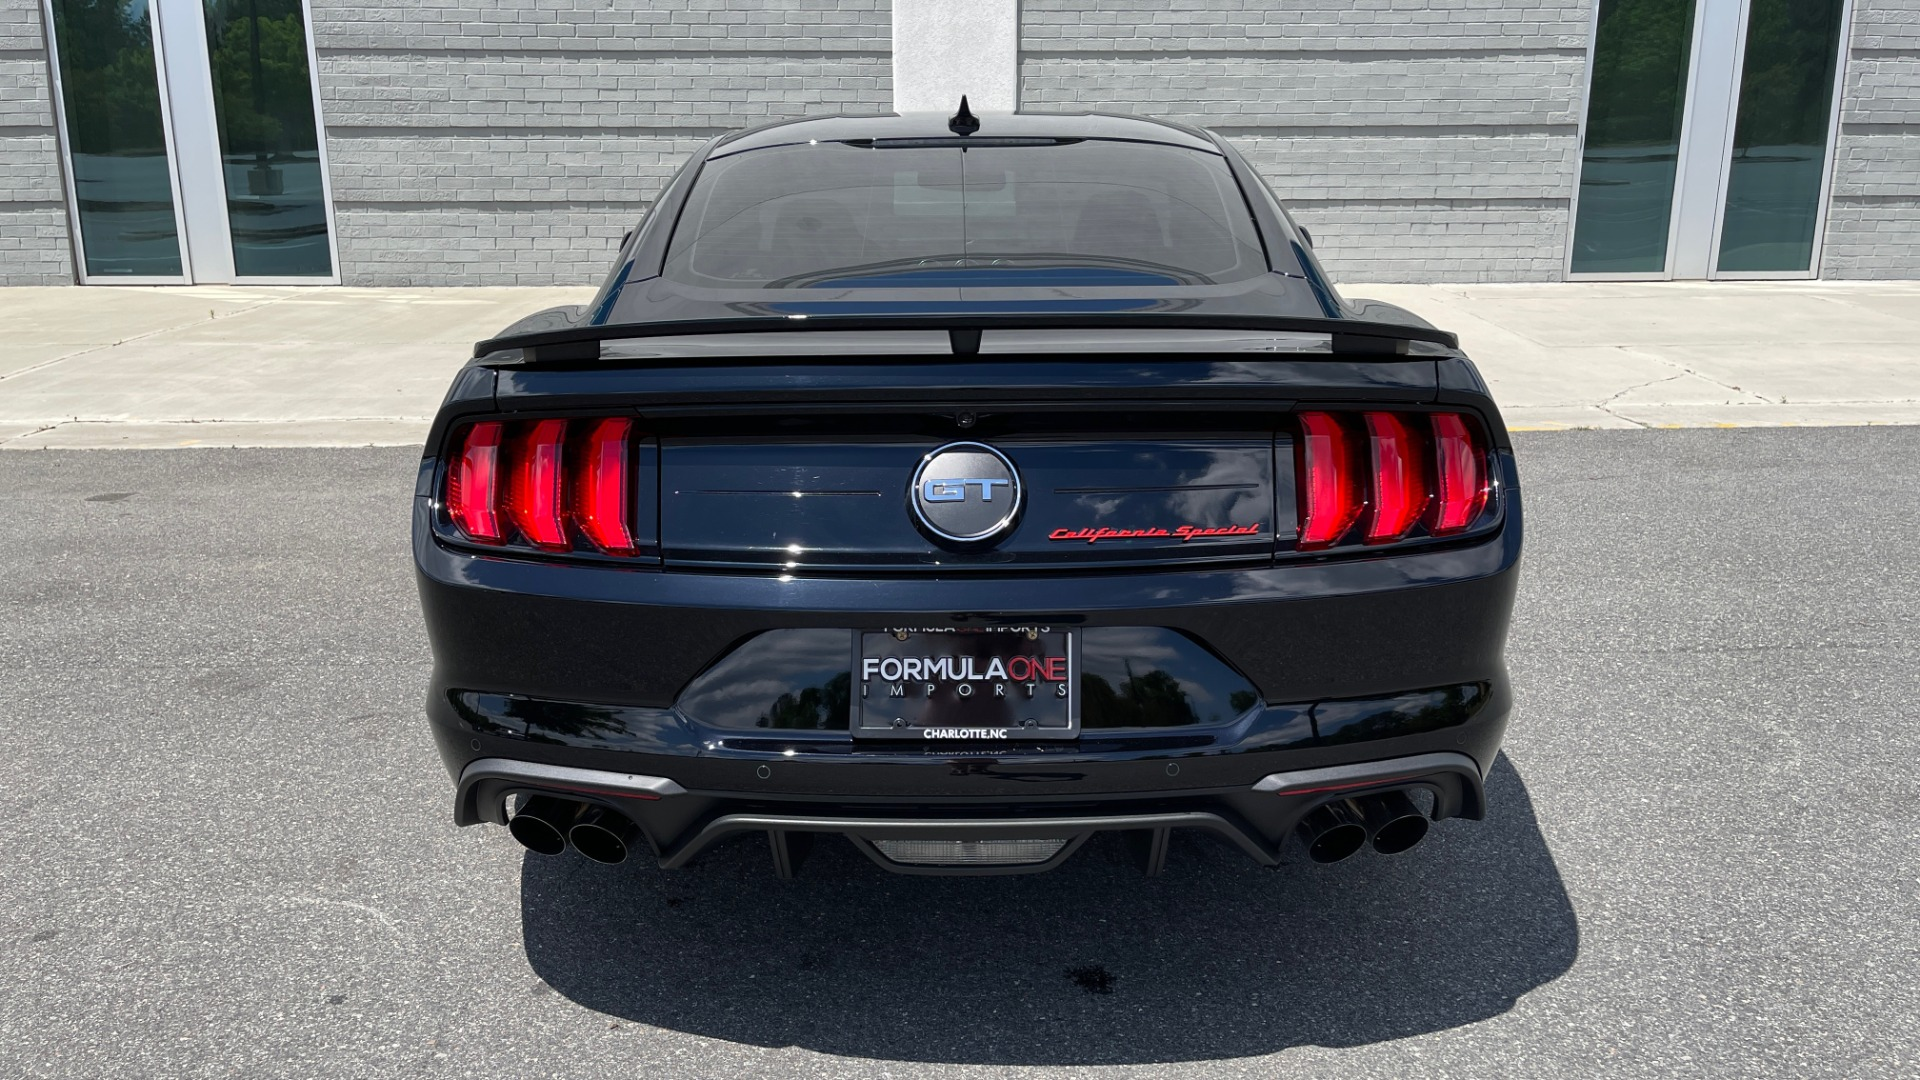 Used 2020 Ford MUSTANG GT PREMIUM / CALIFORNIA SPECIAL / 5.0L V8 / 6-SPD MAN for sale Sold at Formula Imports in Charlotte NC 28227 27